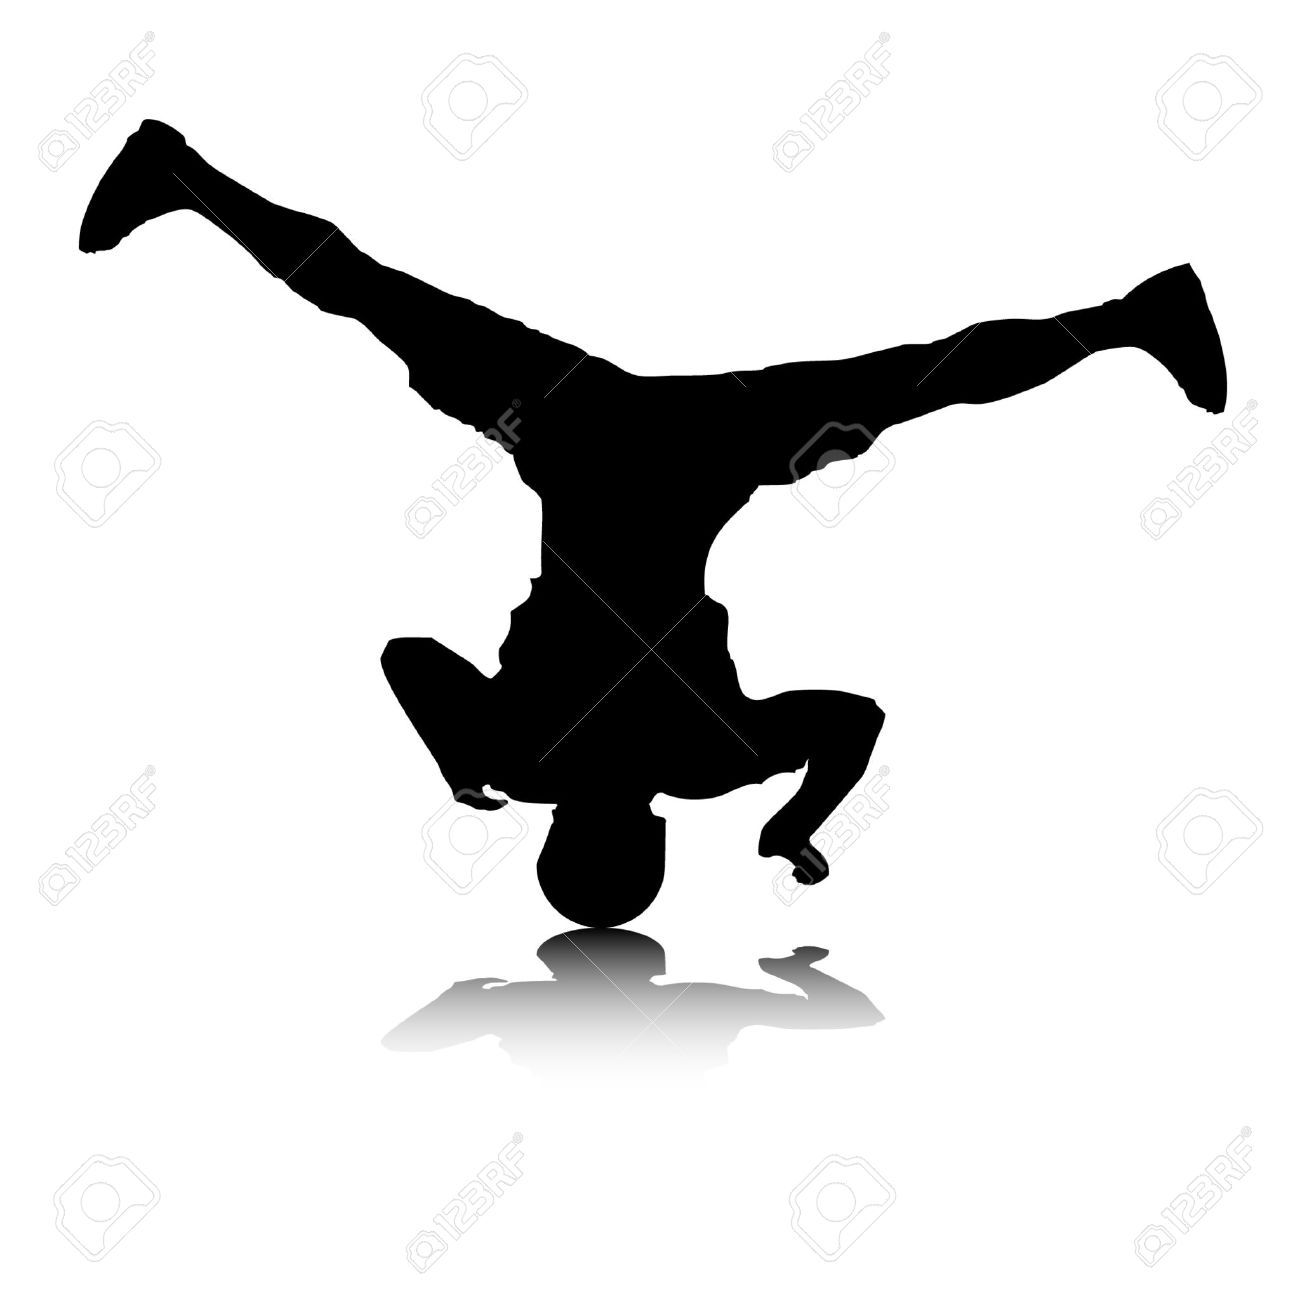 Break dancing clipart 3 » Clipart Portal.